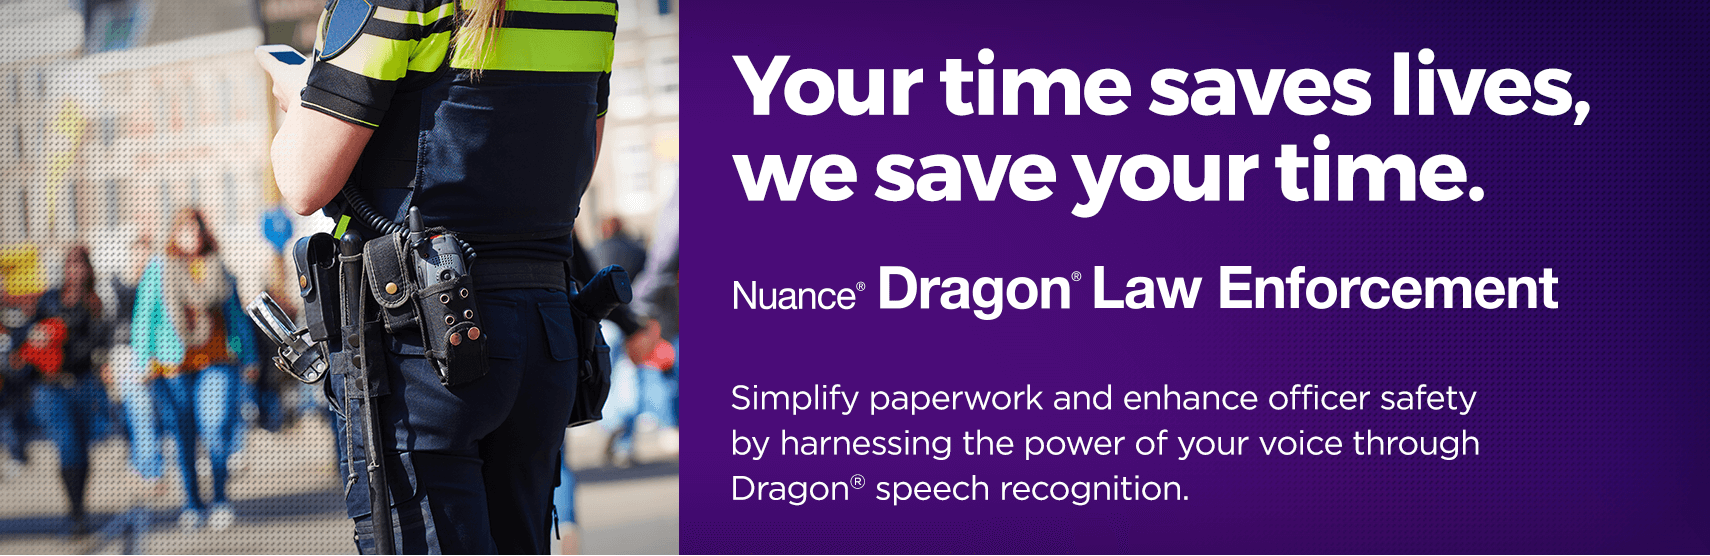 Your tiem saves lives, we save your time. - Nuance Dragon Law Enforcement